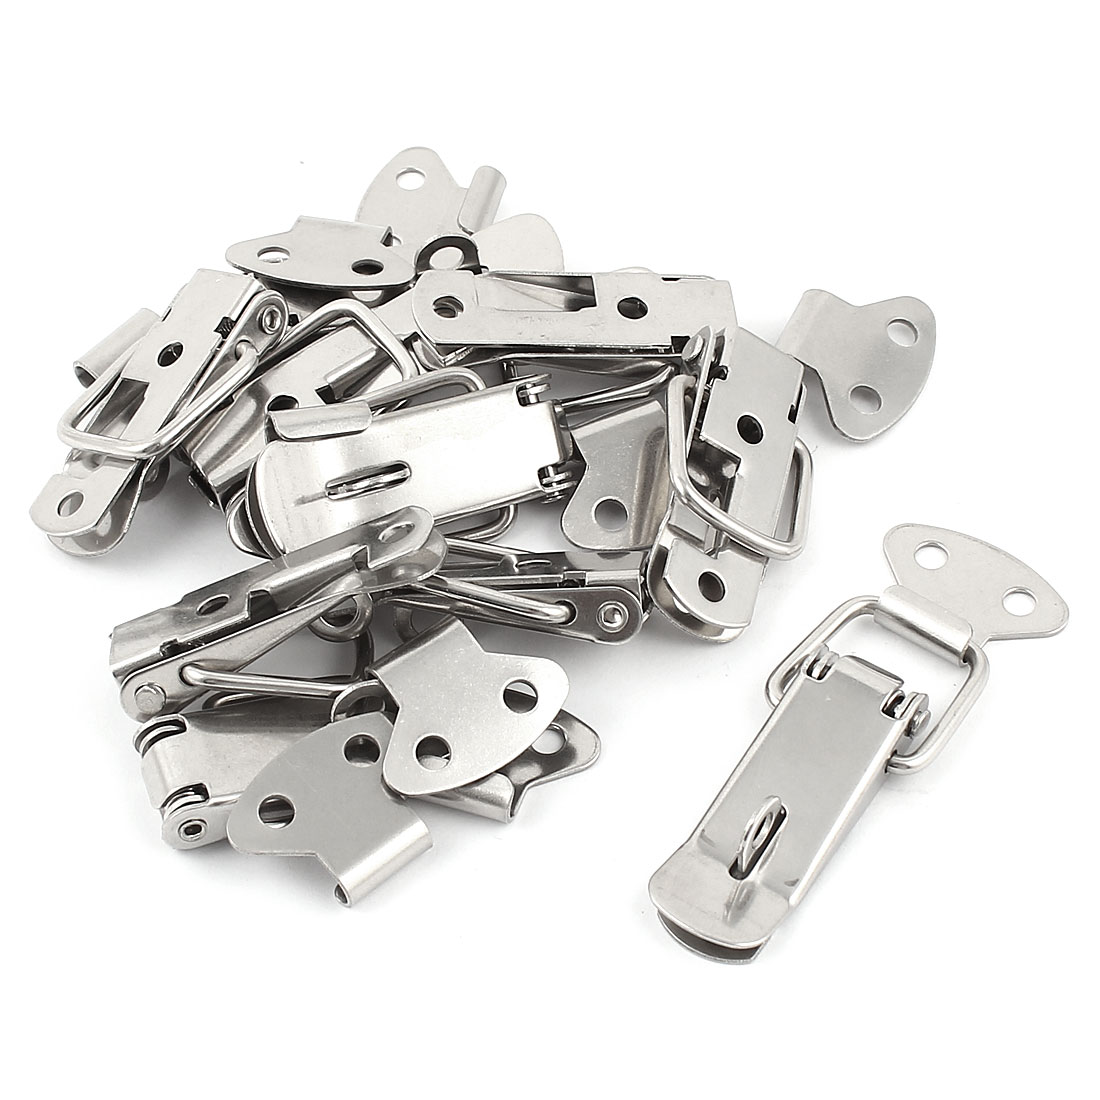 UXCELL 10 Pcs Steel Spring Draw Toggle Latch Catch For Cases Boxes Chests